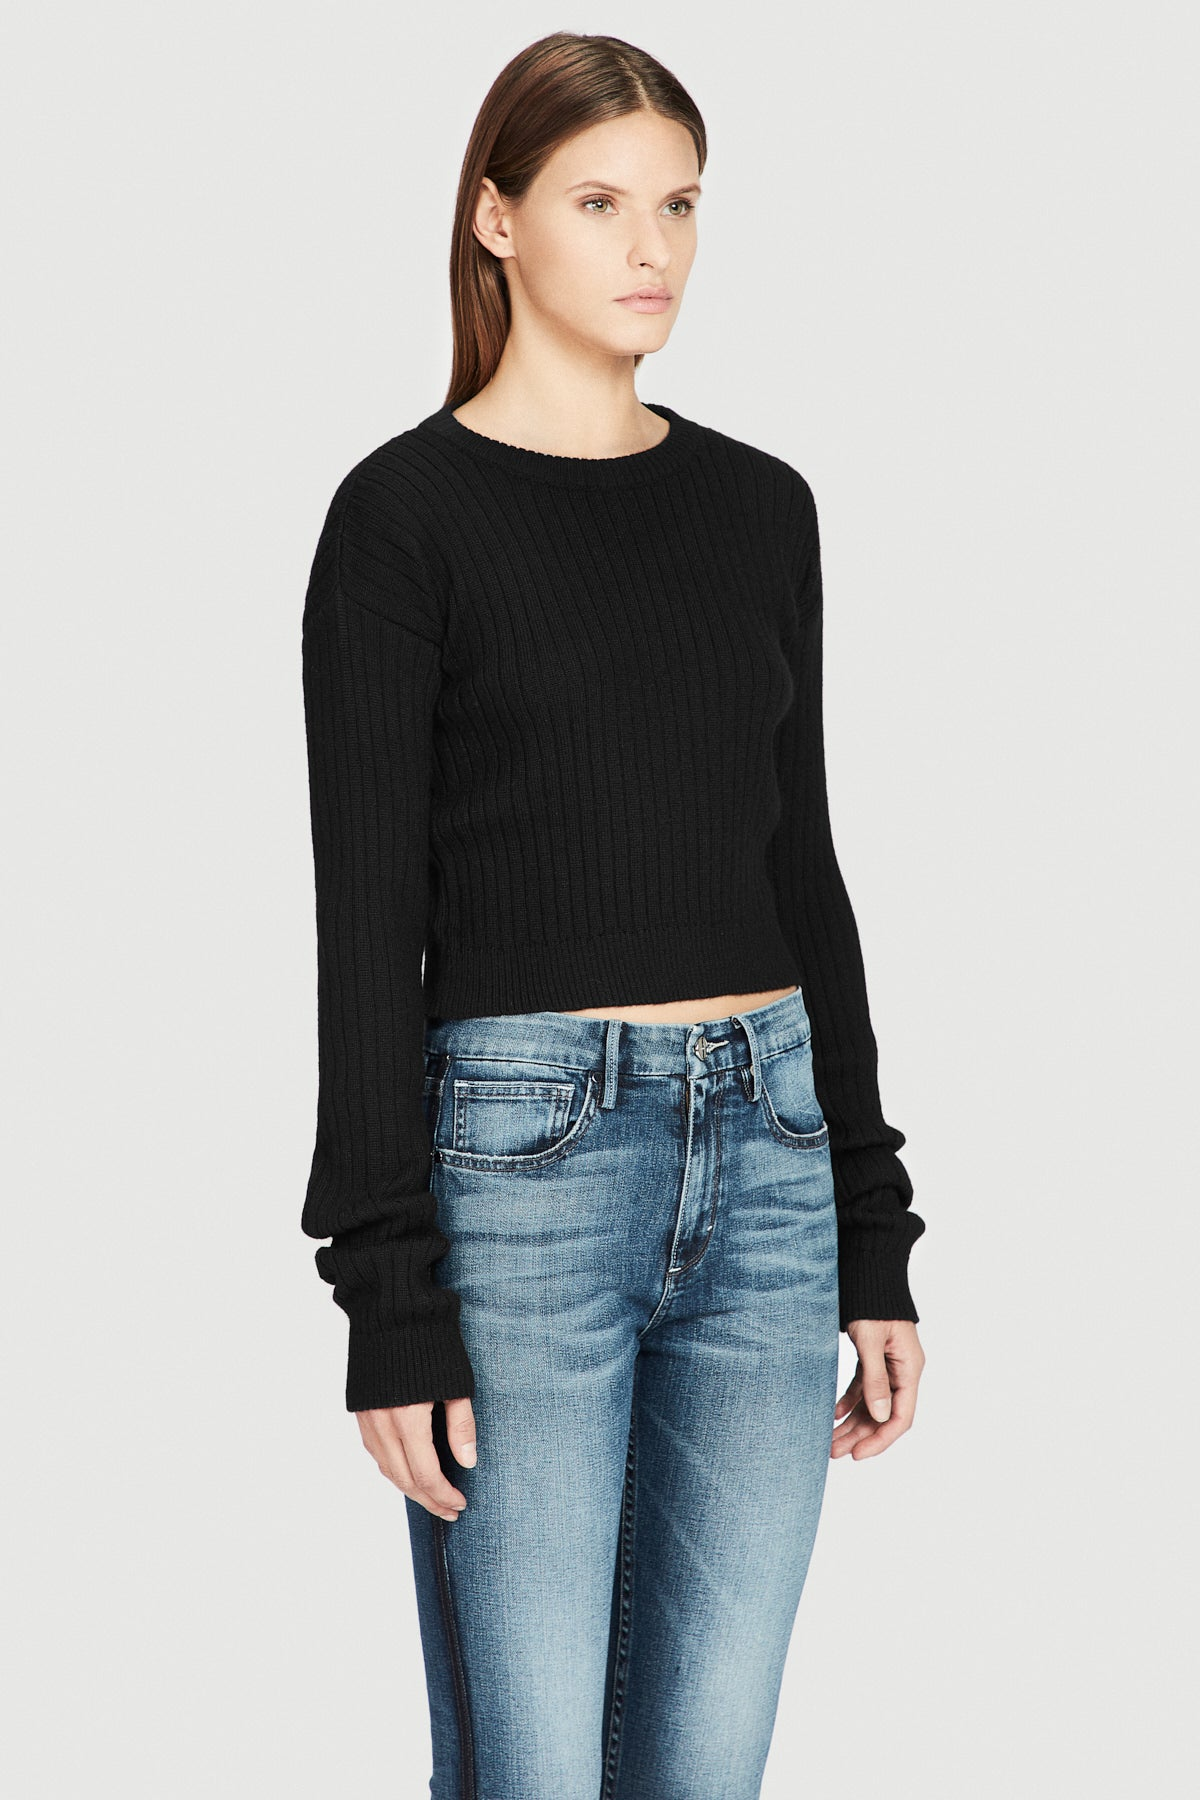 Black Baby Alpaca Cropped Sweater